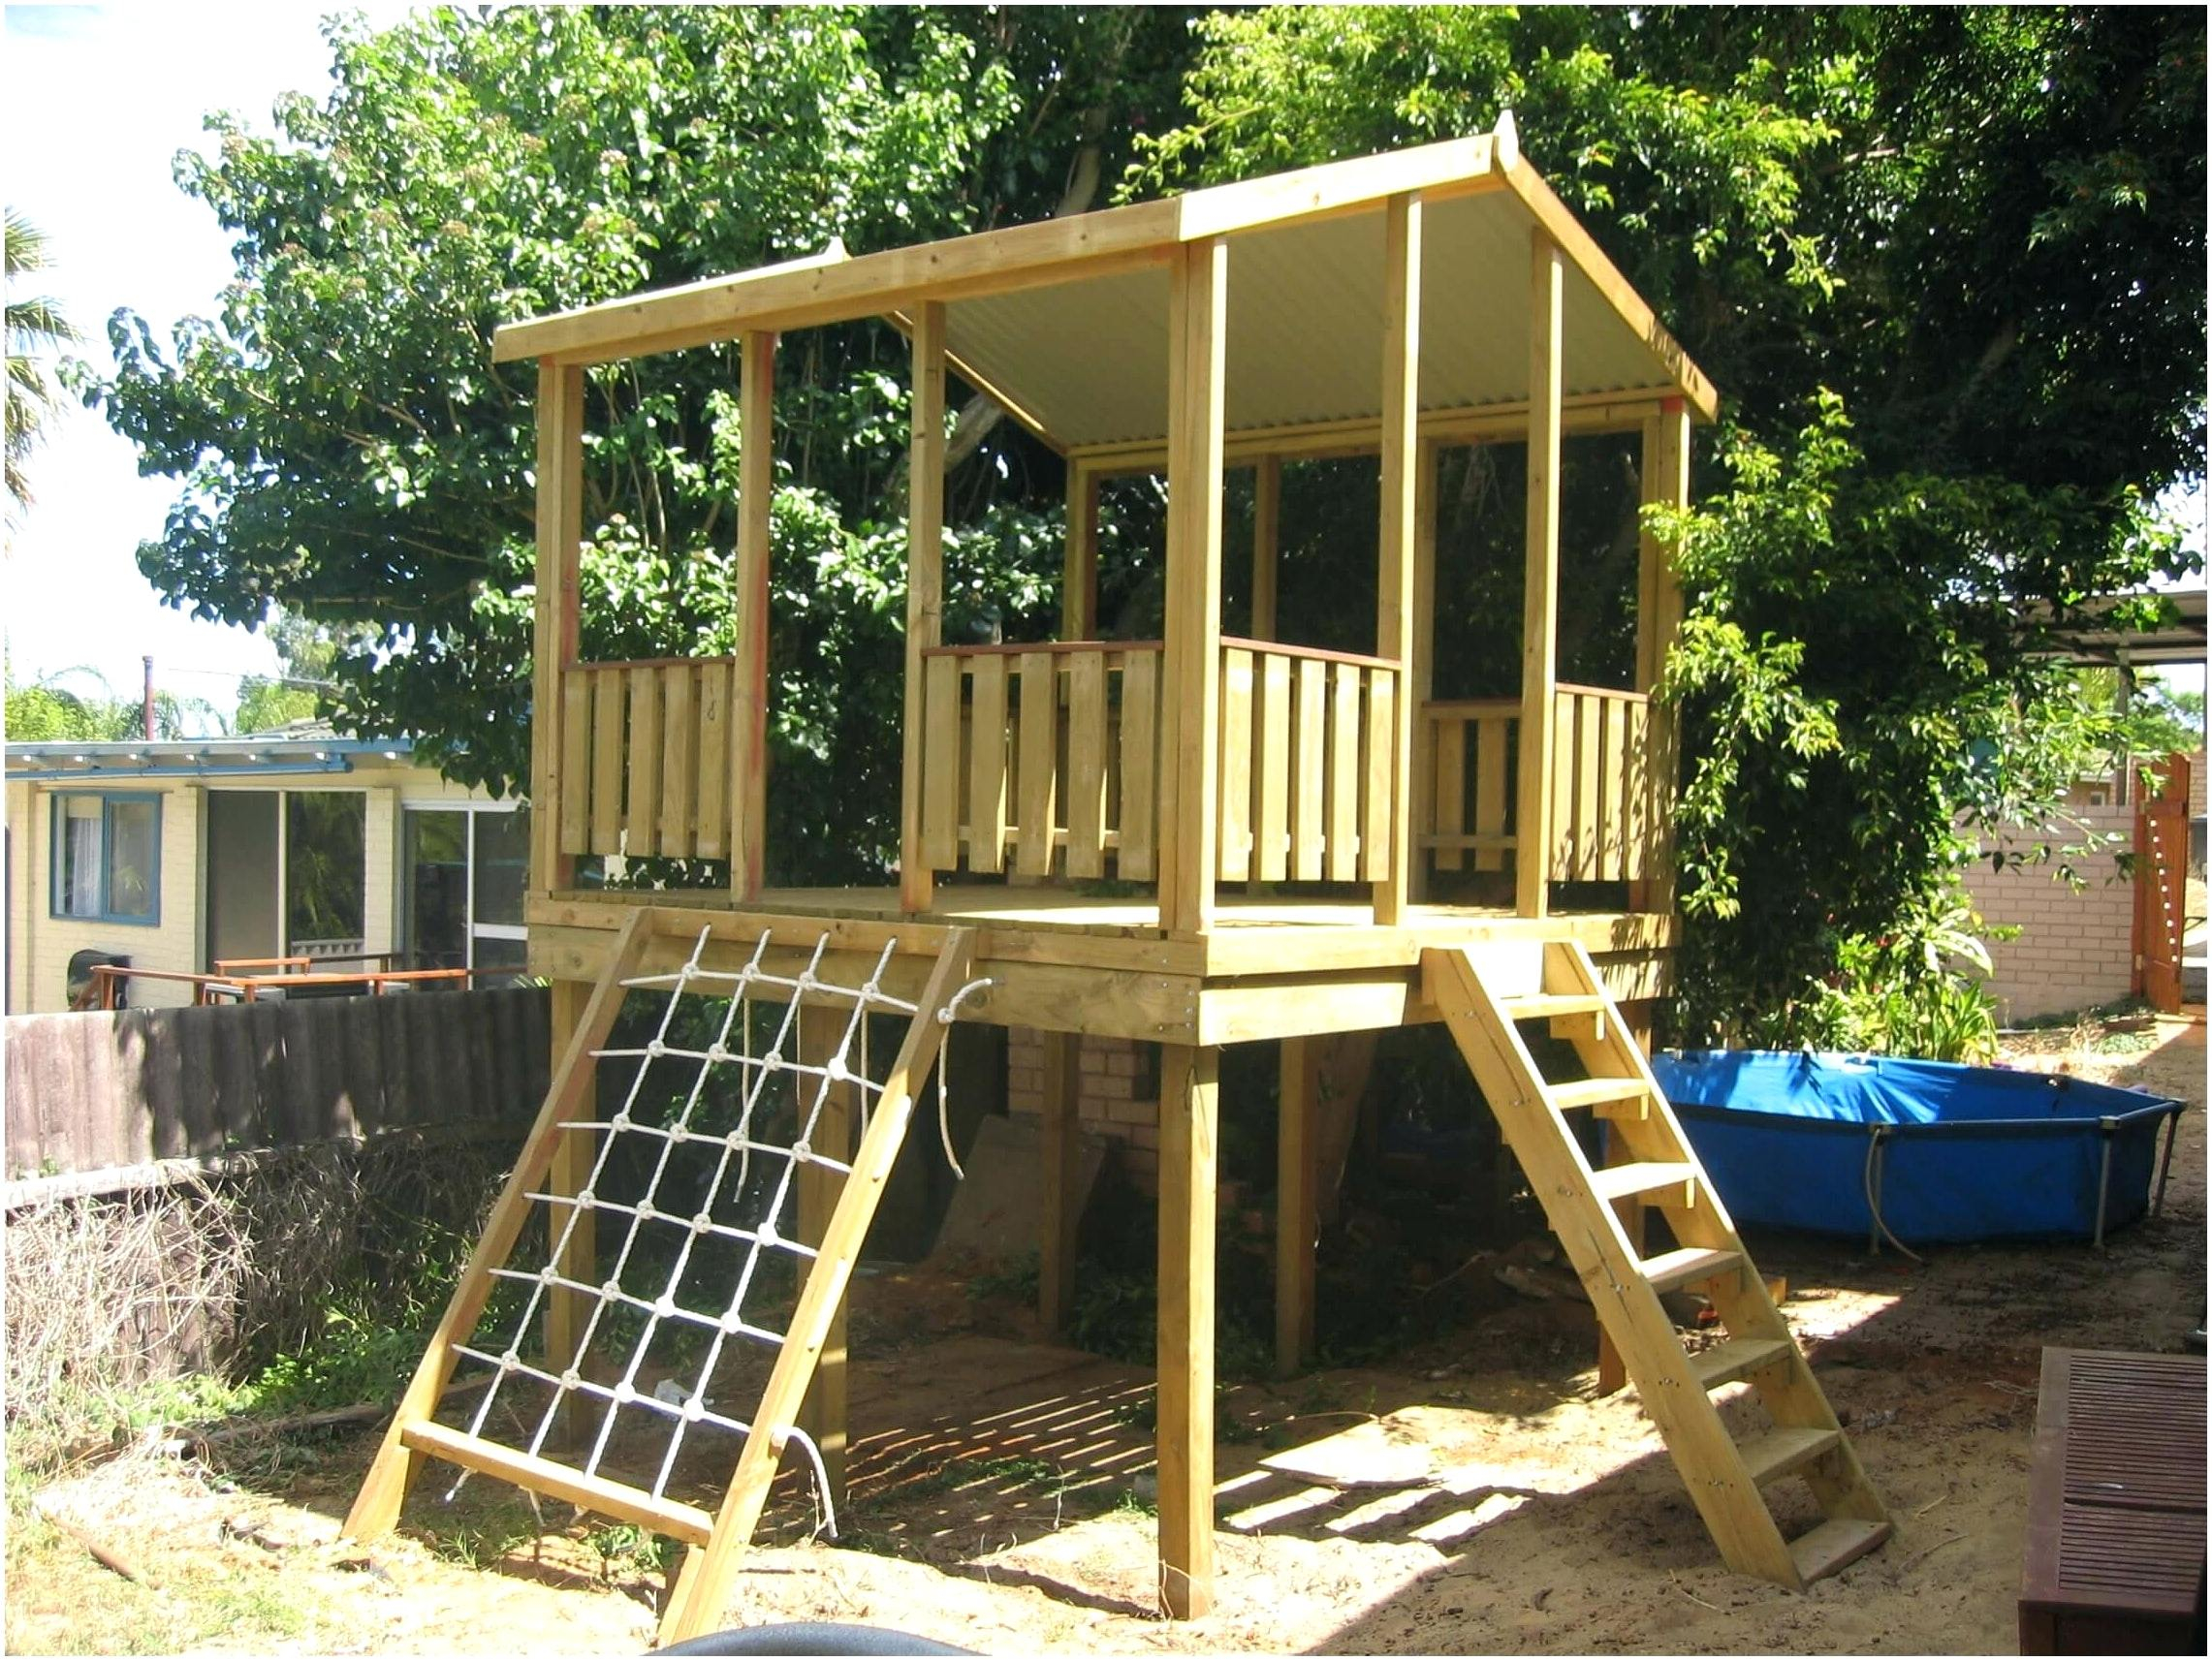 Backyard Fort Plans Backyards Cool Ideas For The Tree Forts Simple regarding Backyard Fort Ideas